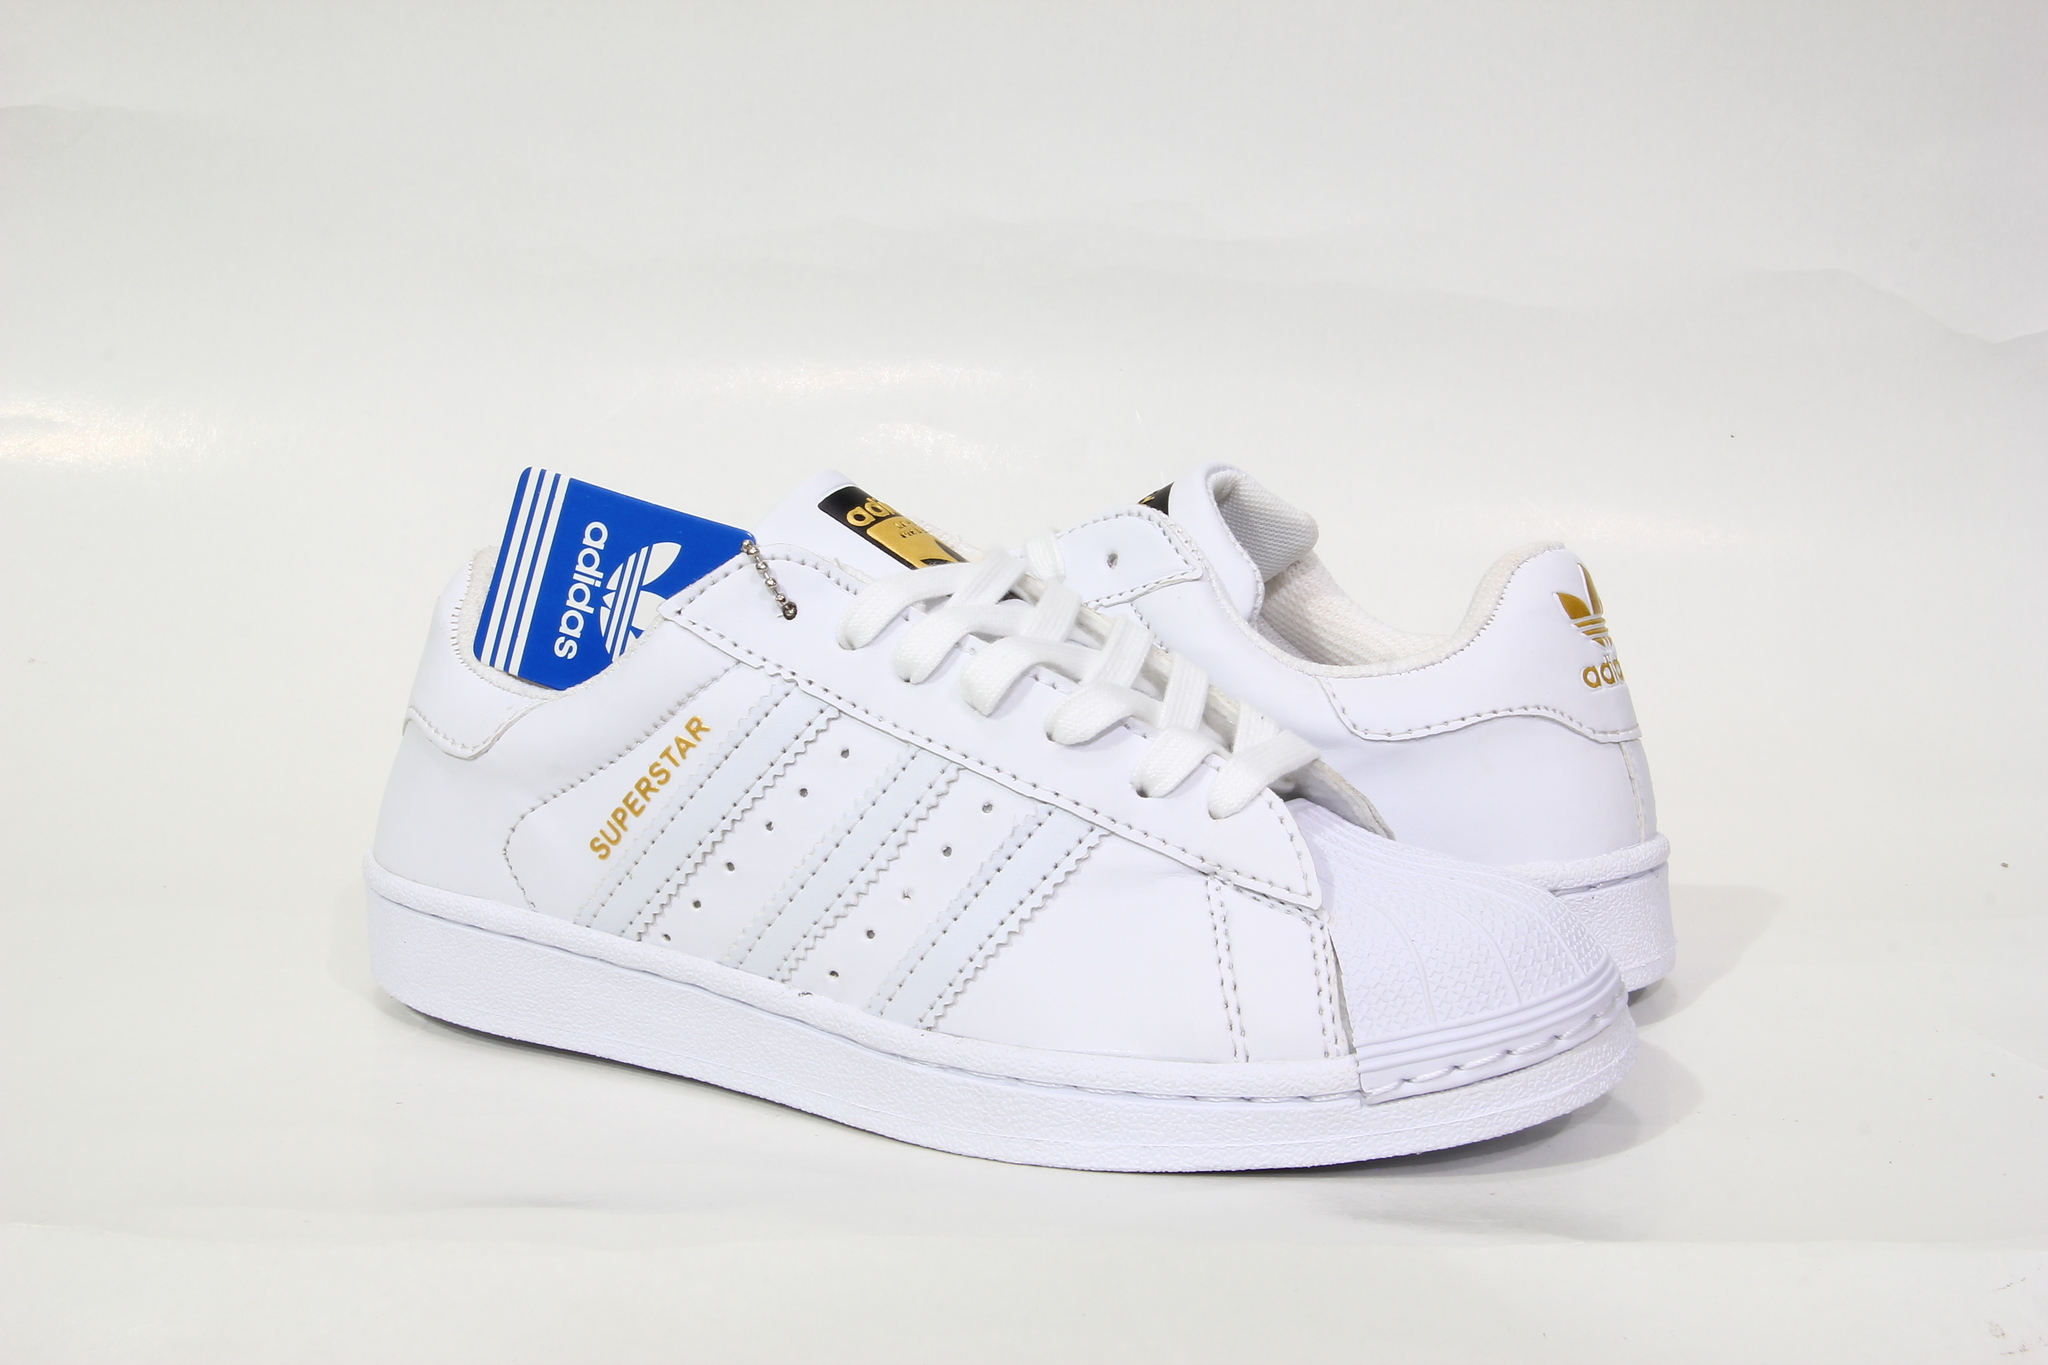 Adidas Superstar Hologram Aq6278 Adidas Outlet Locations Apparel